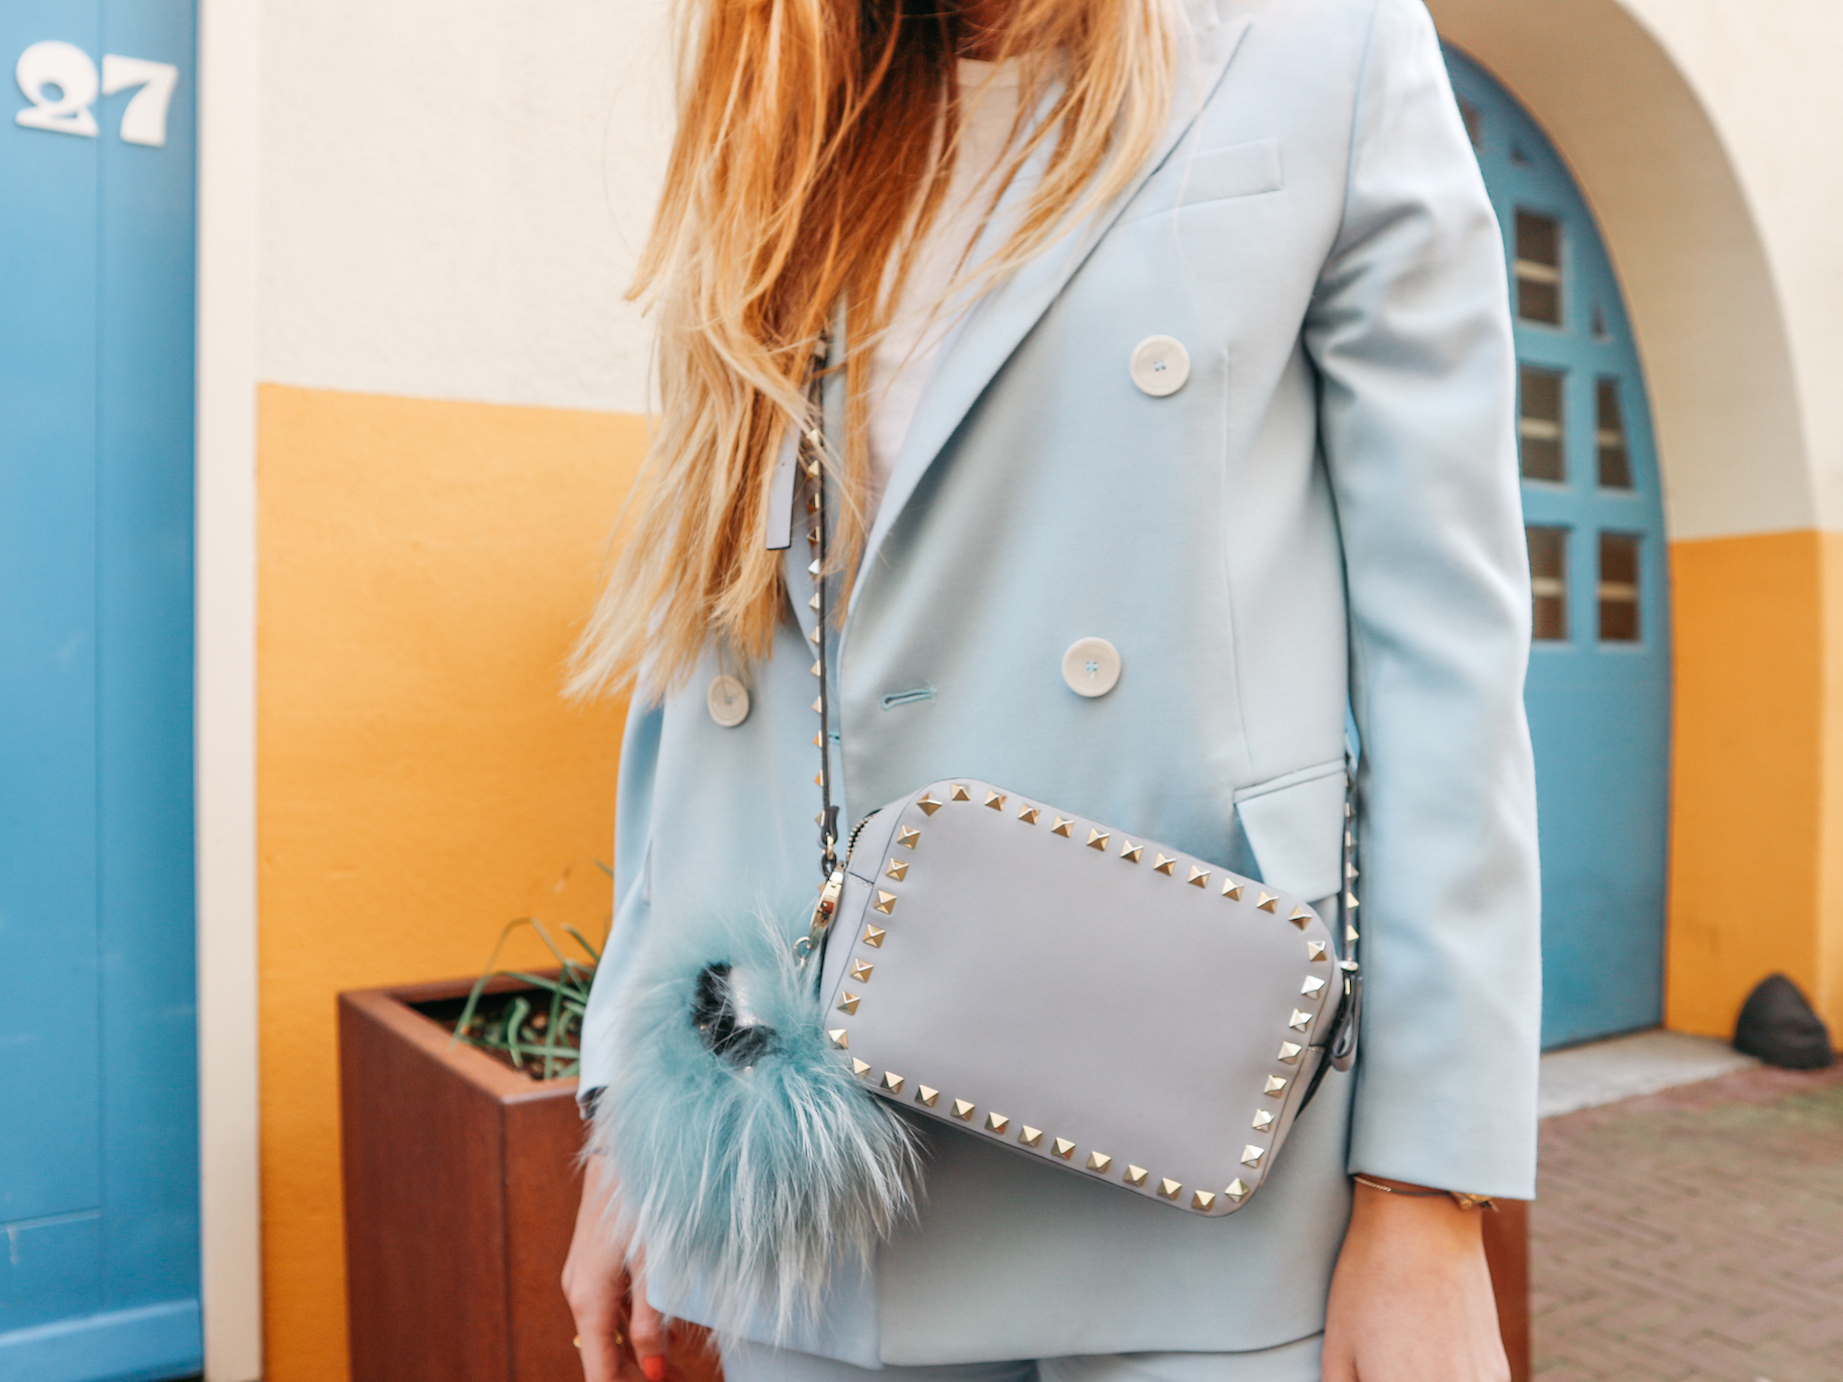 floortjeloves, zara, maison Valentino, Valentino, Valentino bag, all stars, all stars sneakers, converse, converse sneakers, mango, mango earrings, statement earrings, blue suit, suit, baby blue suit, light blue suit